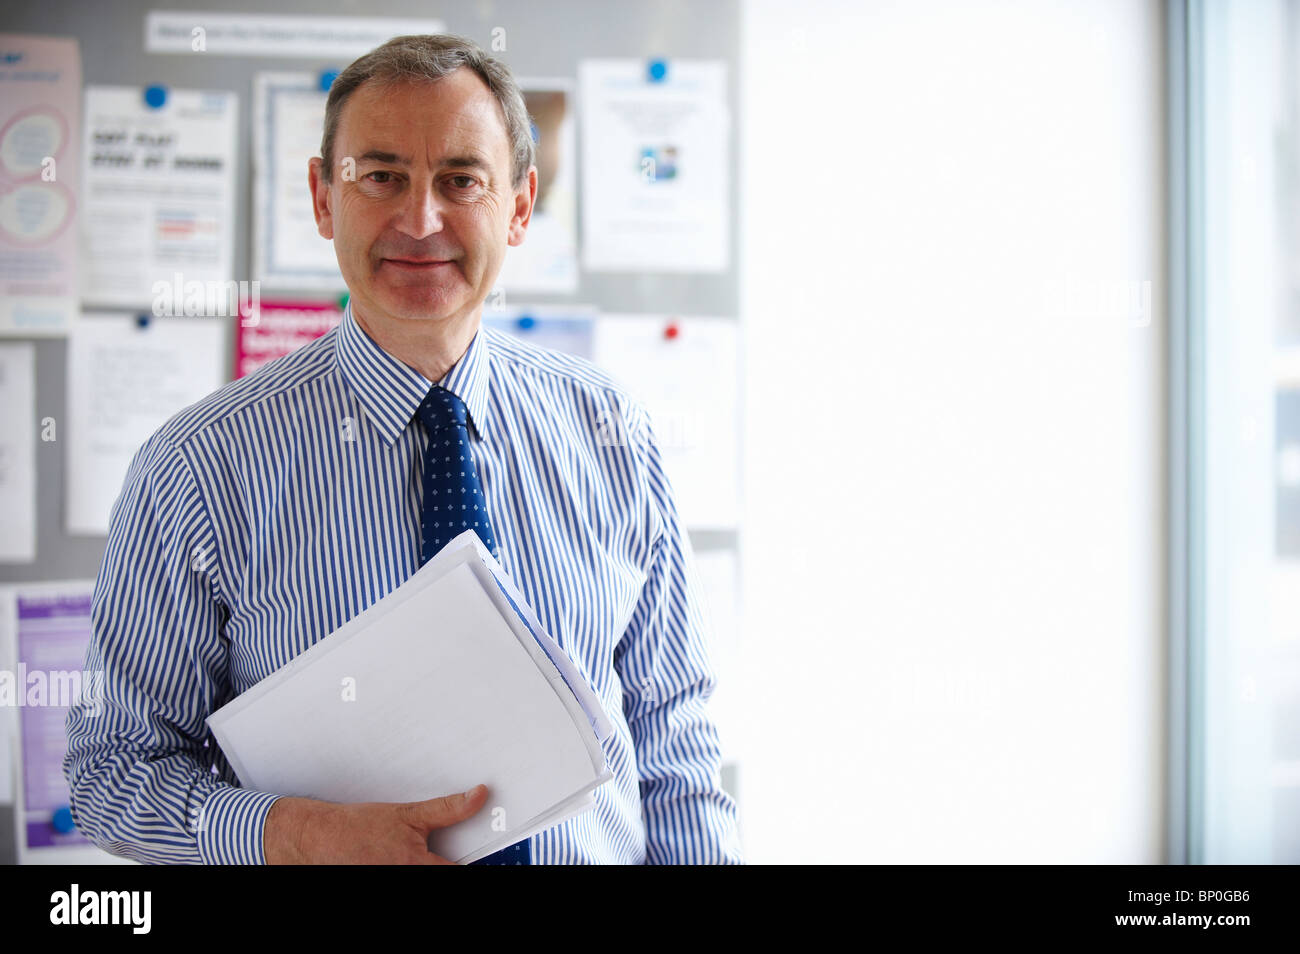 Male Medical consultant holding papers - Stock Image